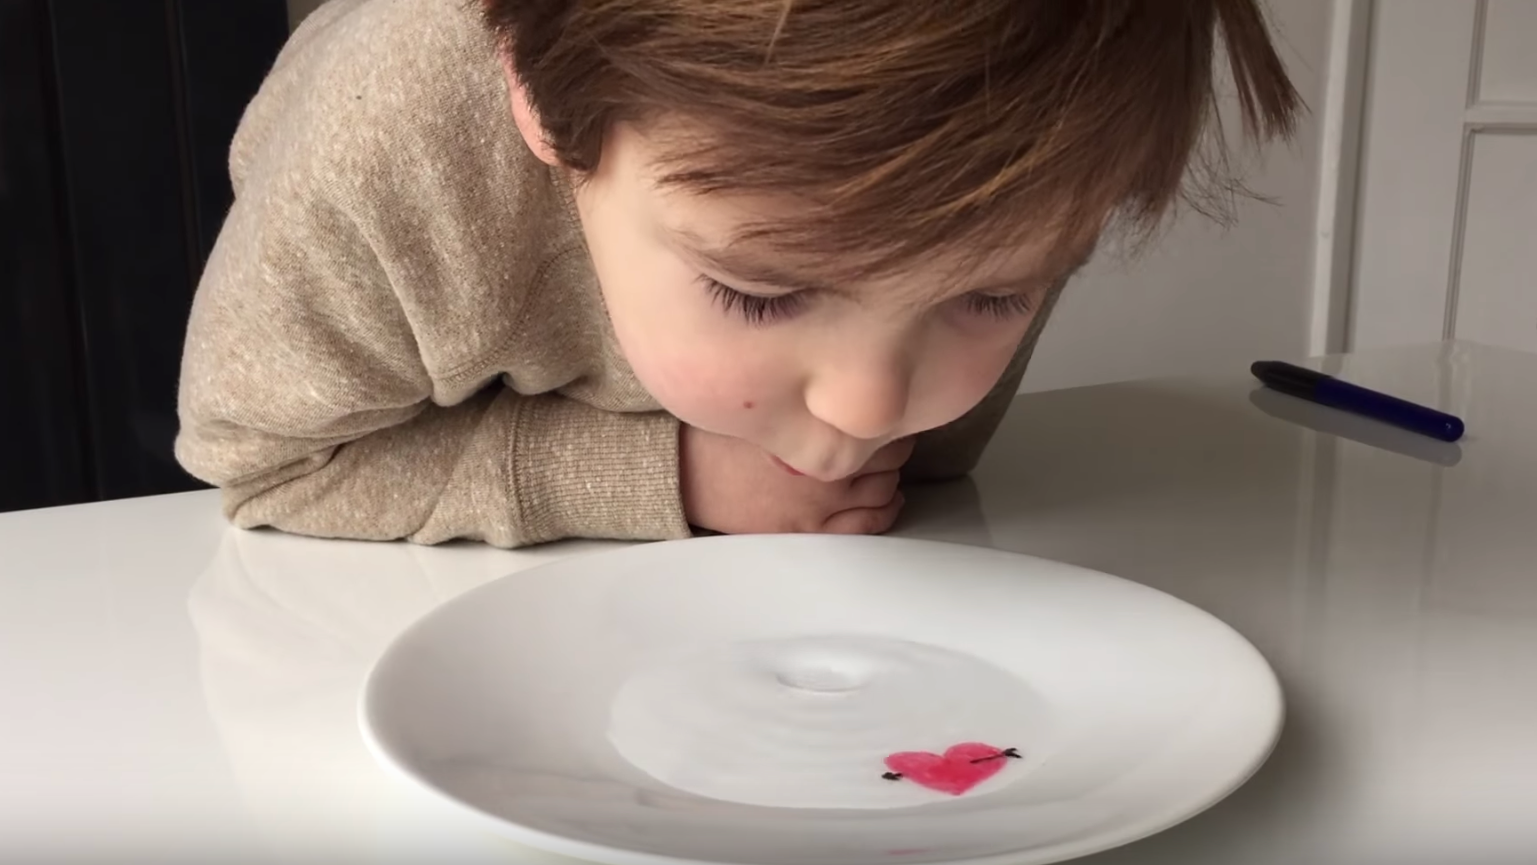 Make 'Floating Pictures' With Your Kid